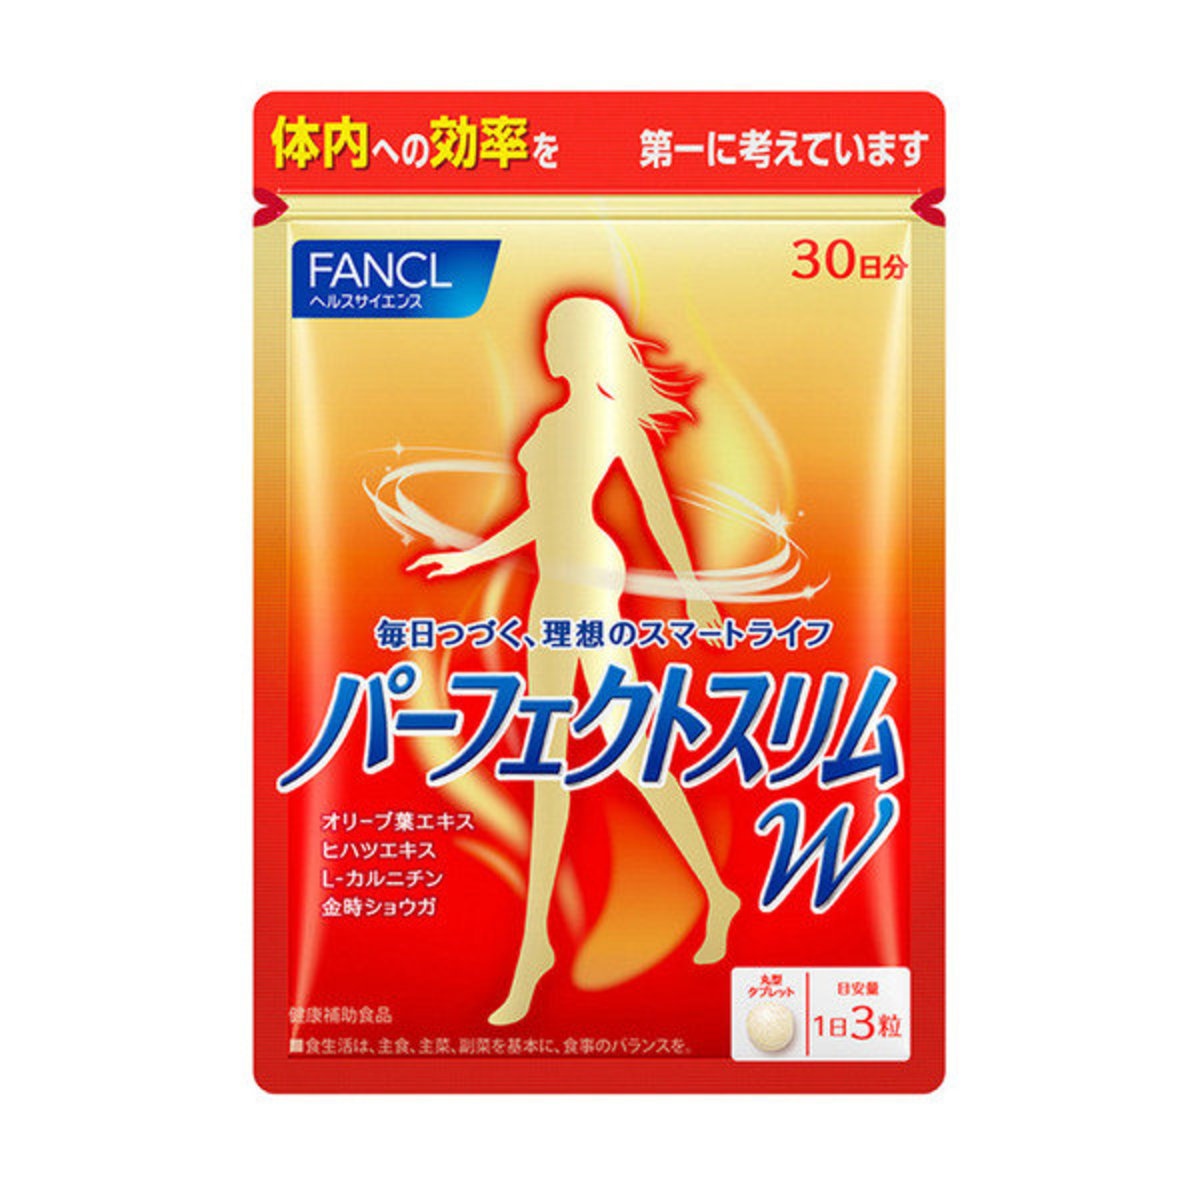 (2019 new package) Perfect Slim W Diet Supplement 90 tablets (30 days)(Parallel Imports Product)